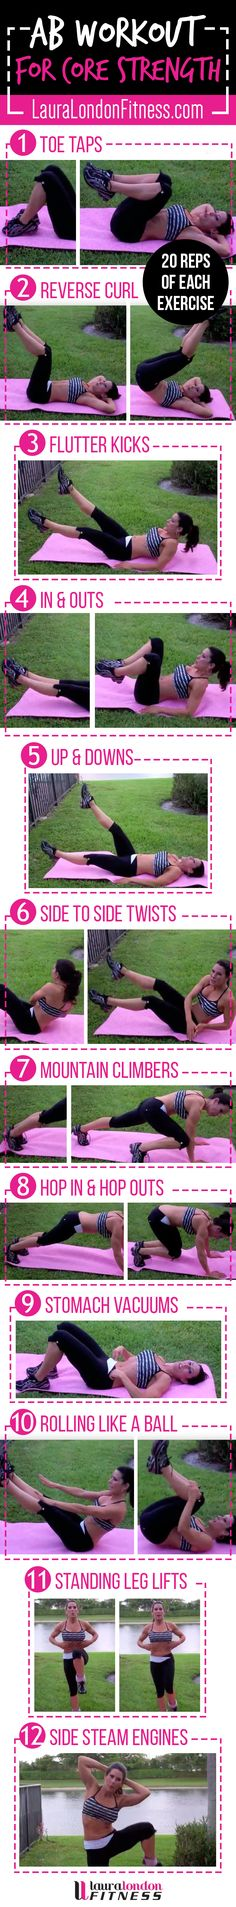 AB workout to build CORE strength. 12 AB exercises to get you TNT tight and tiny! Watch the full Video Here: https://www.youtube.com/watch?v=JJUaTkbYm-k #fitness #homeworkouts #lauralondonfitness